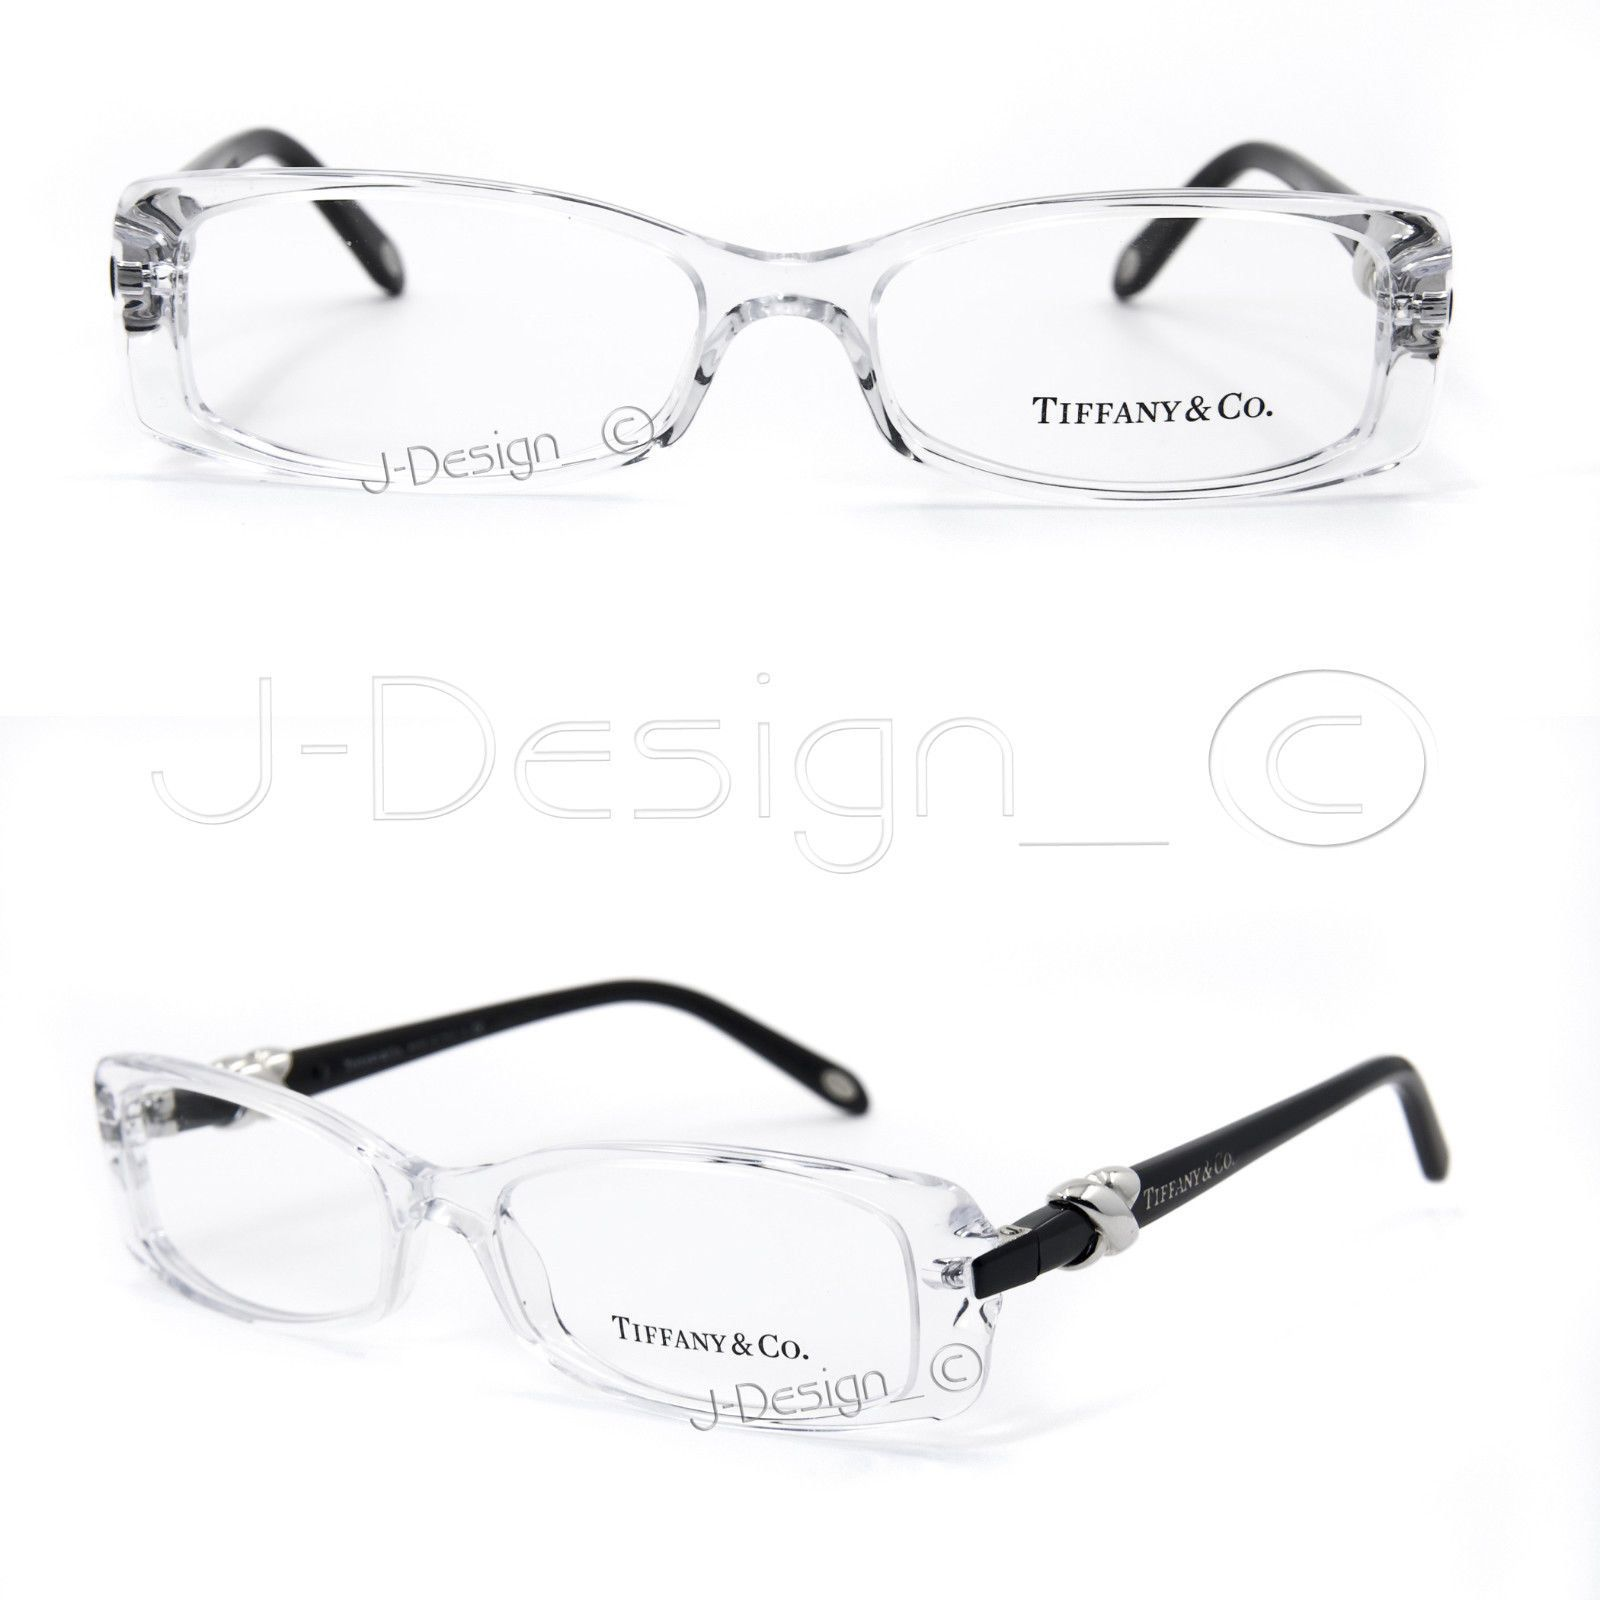 Tiffany Co. Rx eyeglass frames - I must have these! | Glasses with ...